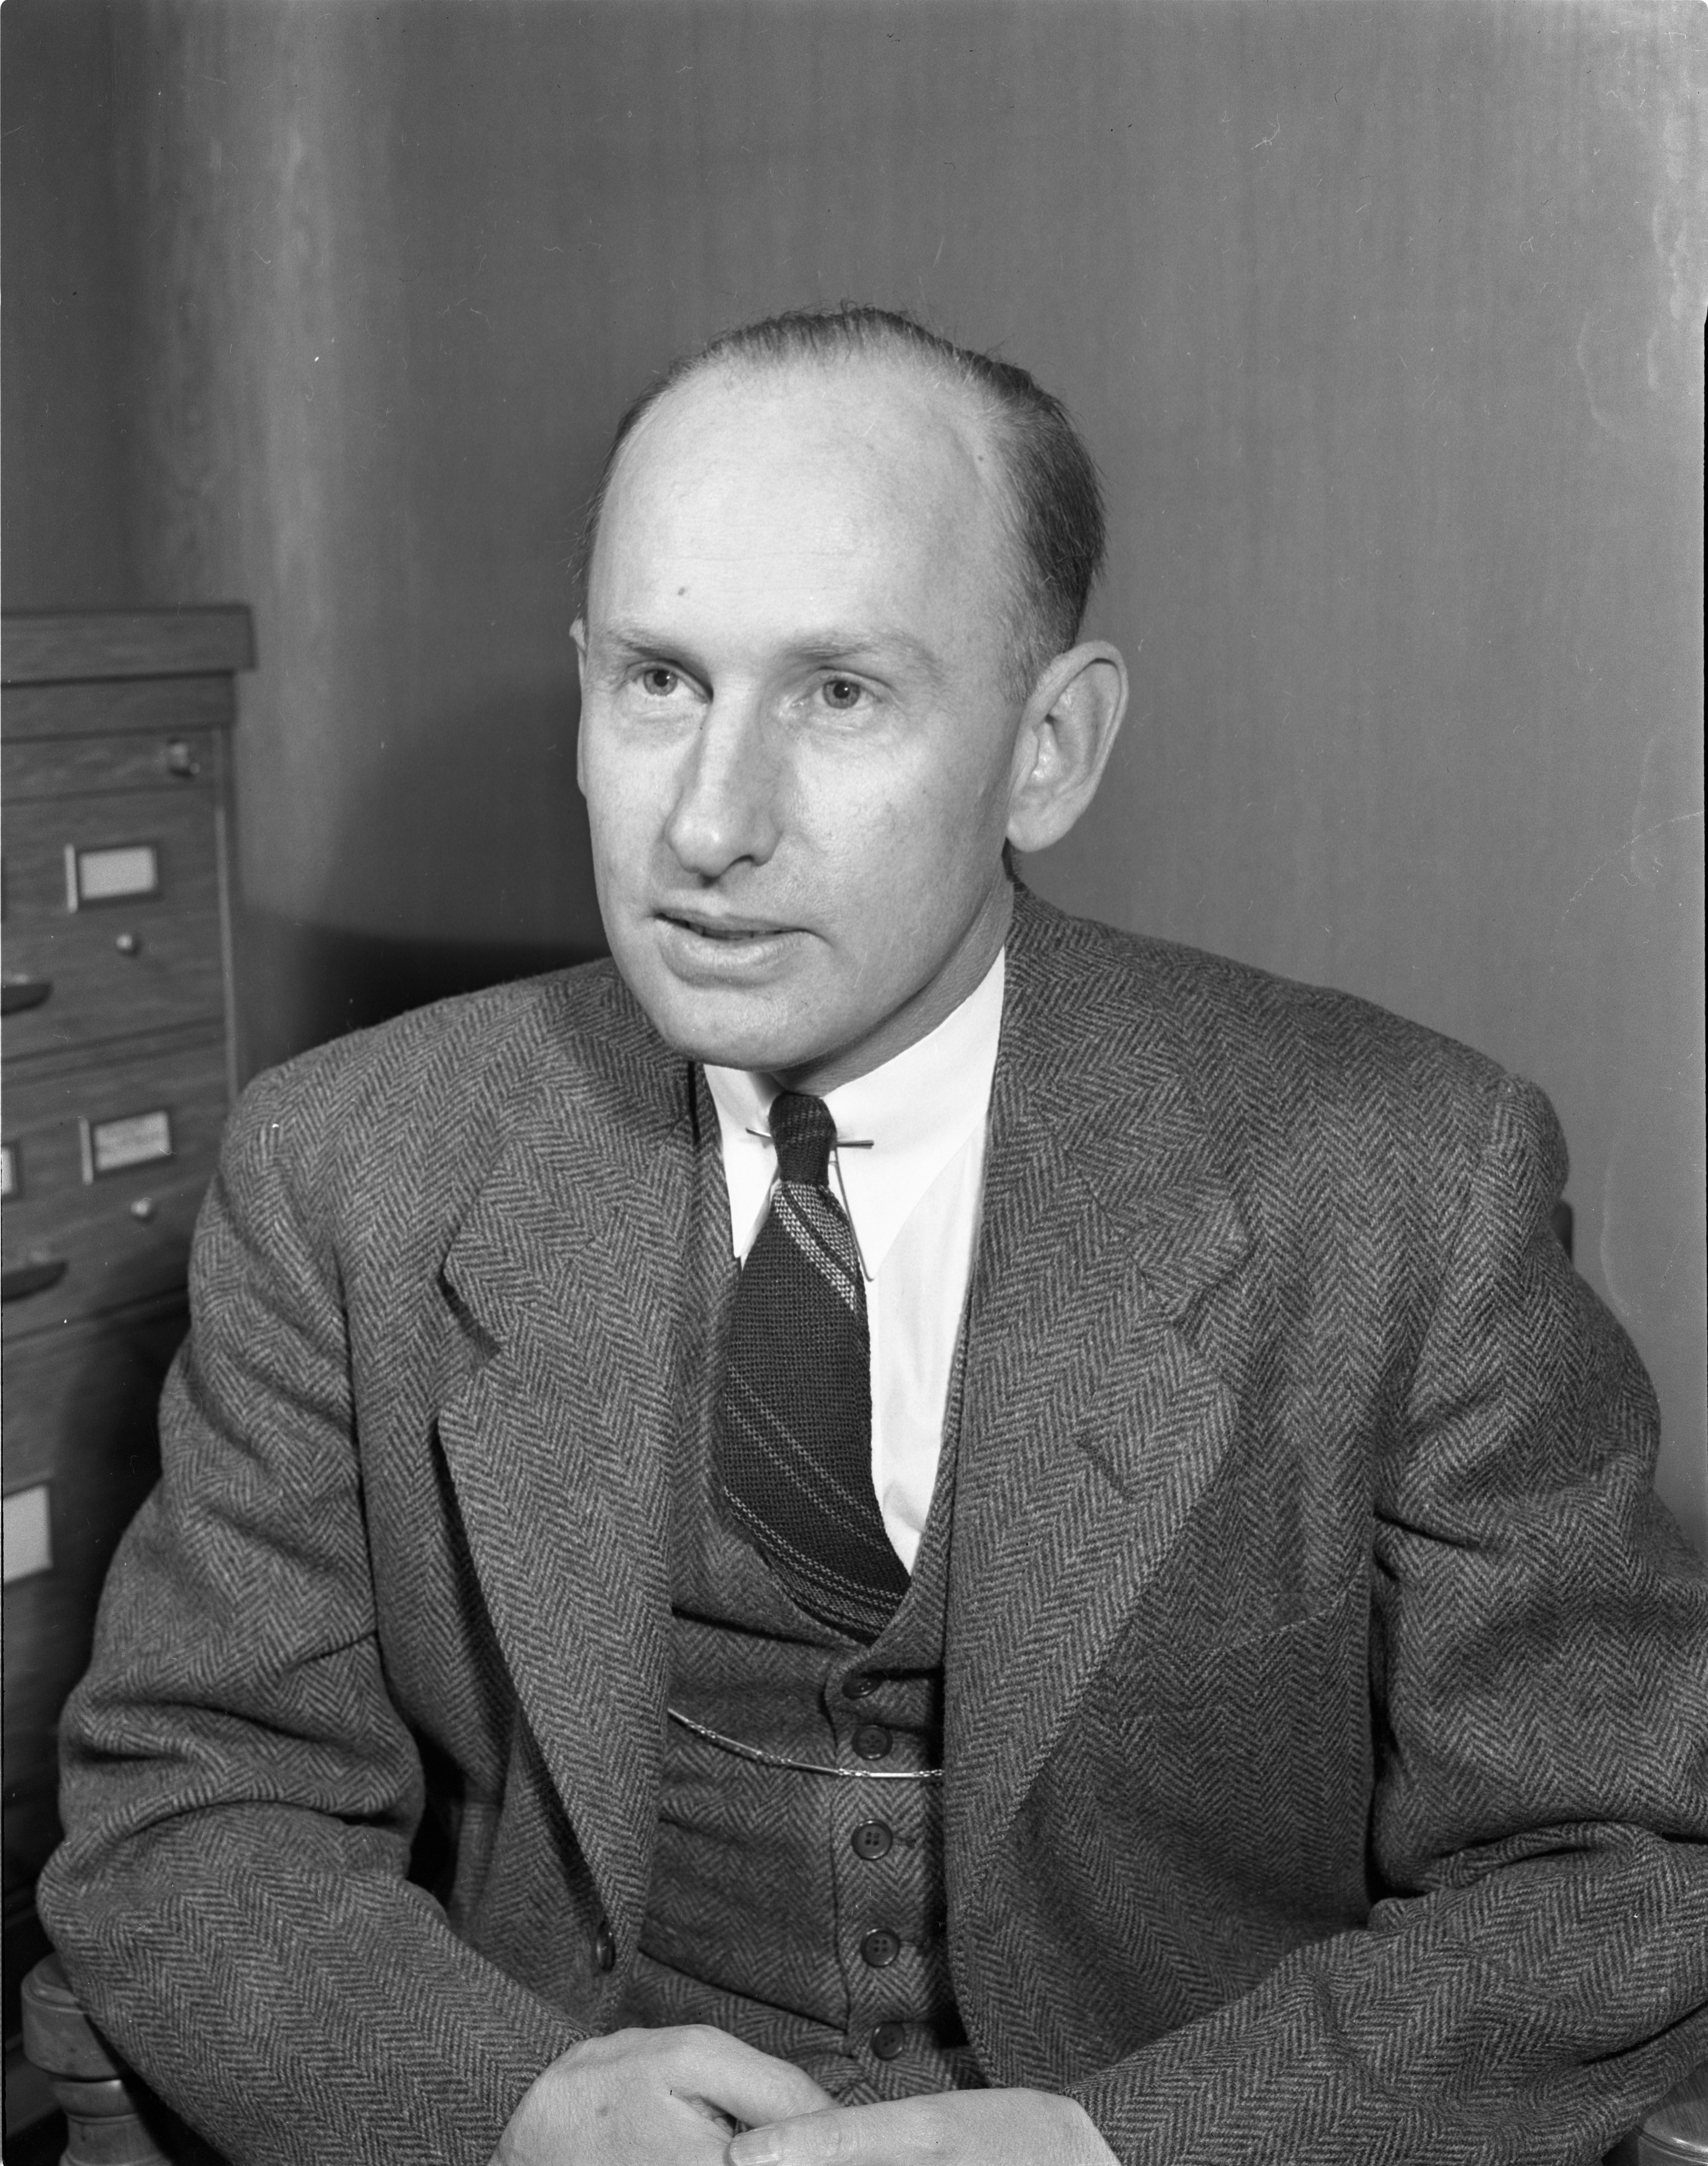 Talbot Smith Of The Burke & Burke Law Firm, March 2, 1944 image